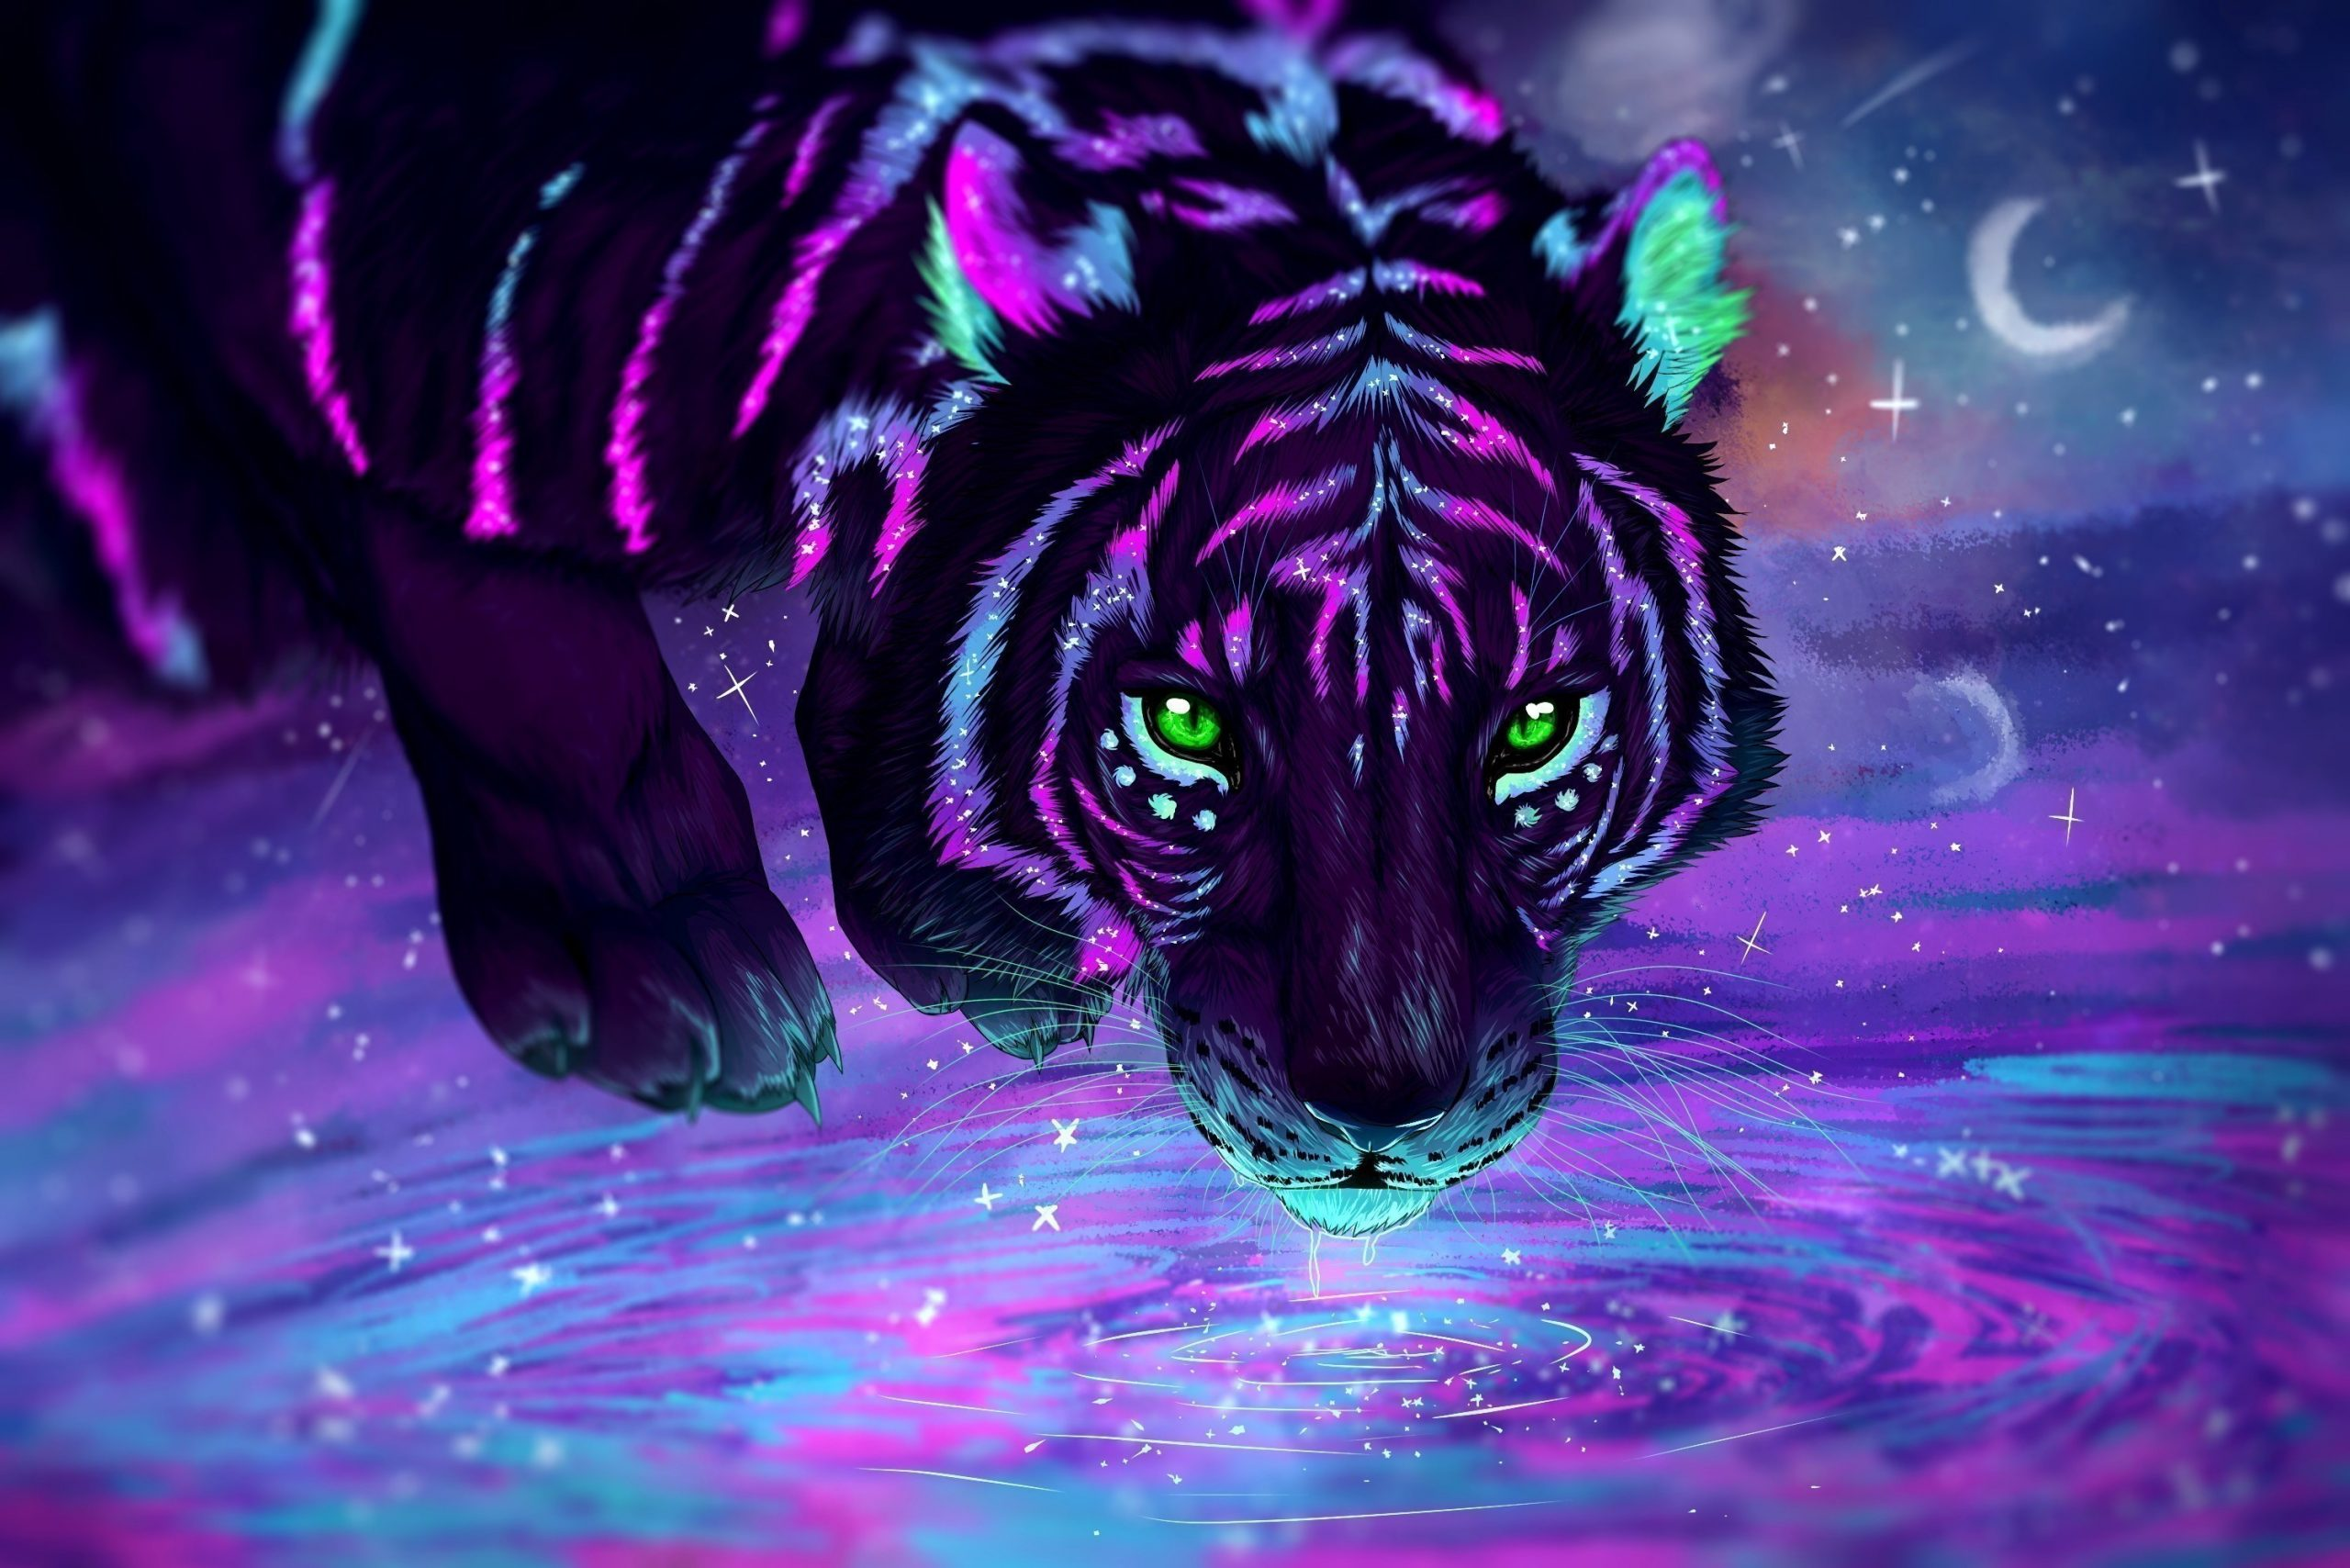 Cool Tiger Wallpaper scaled